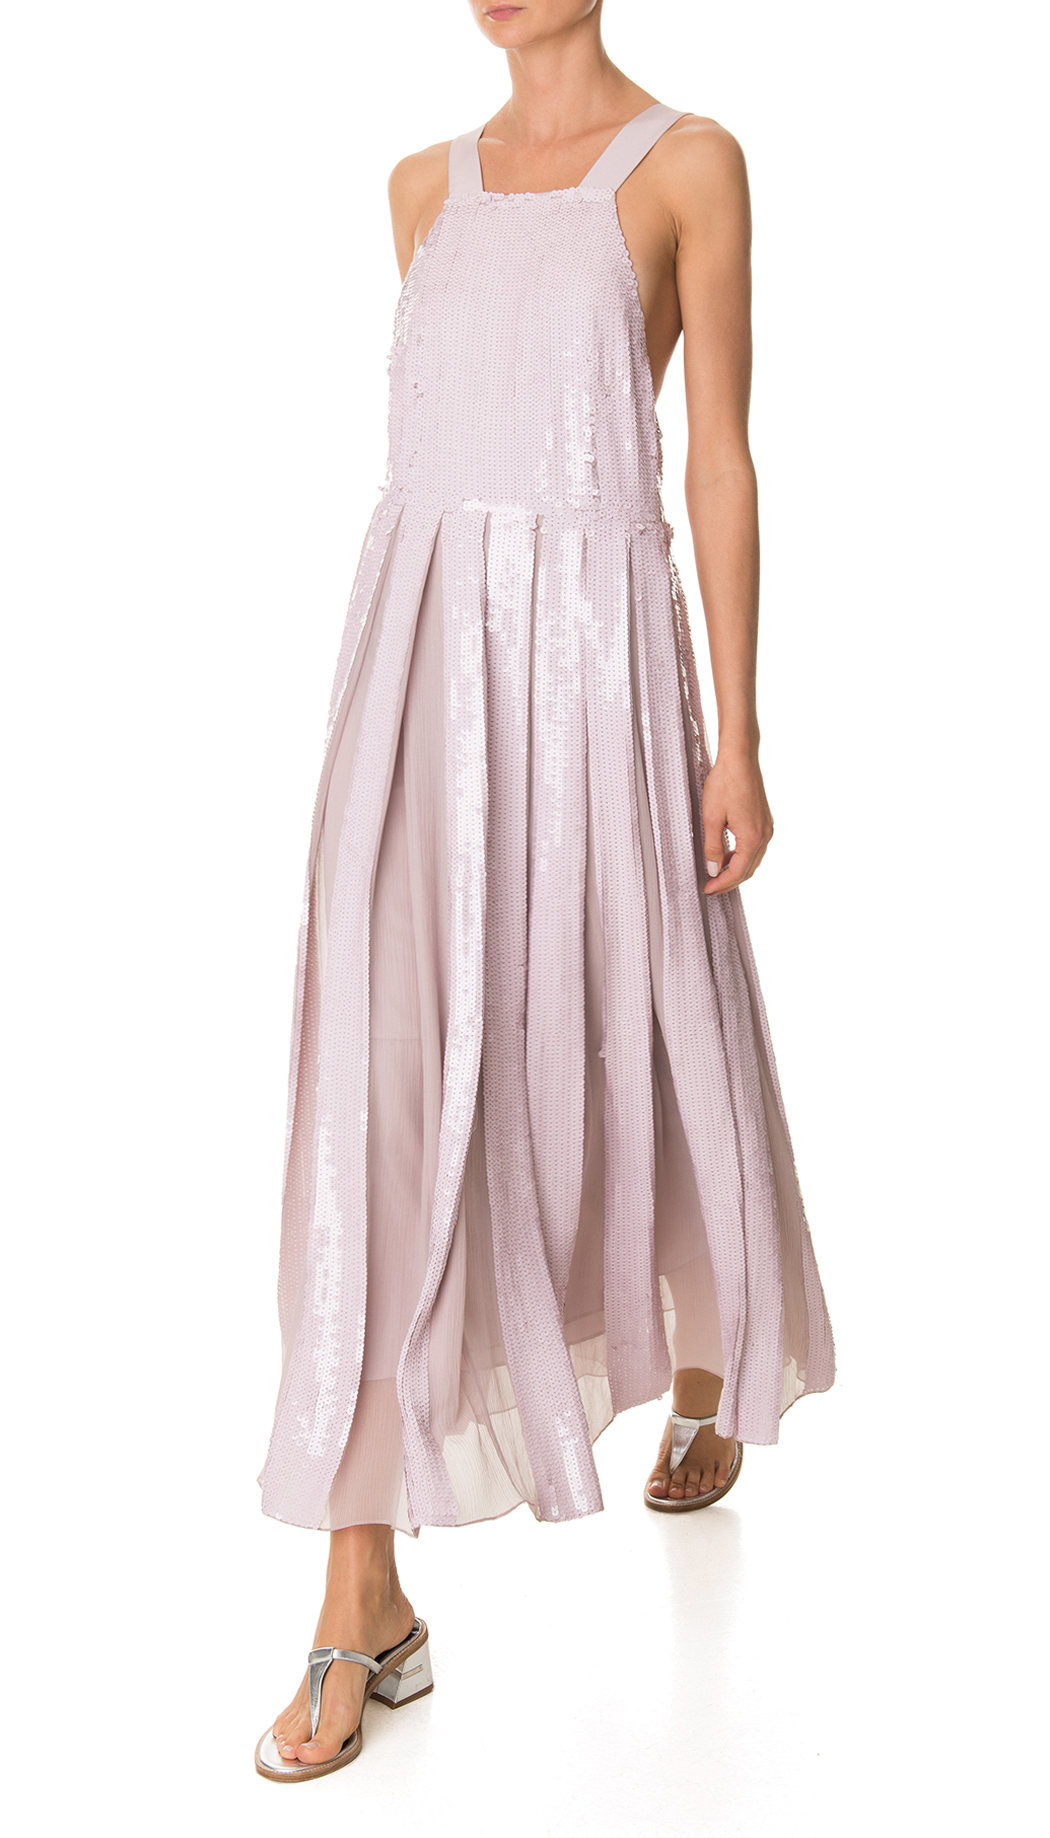 tibi rose quartz eclair sequins overall dress pink product 0 952917883 normal